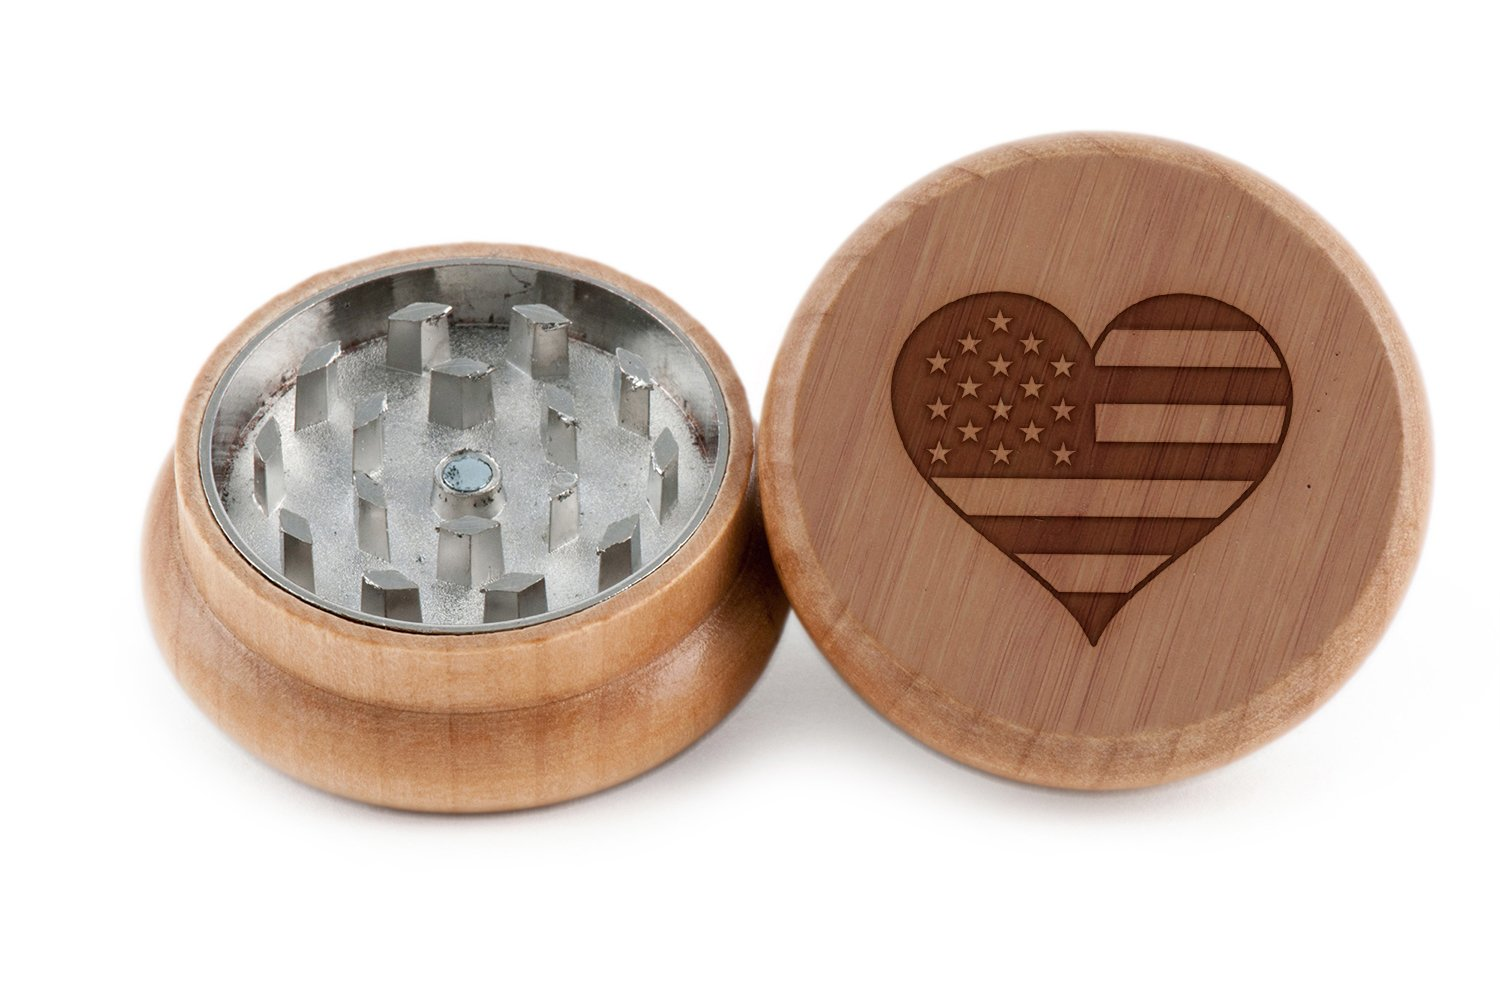 GRINDCANDY Spice And Herb Grinder - Laser Etched America Design - Manual Oak Pepper Grinder